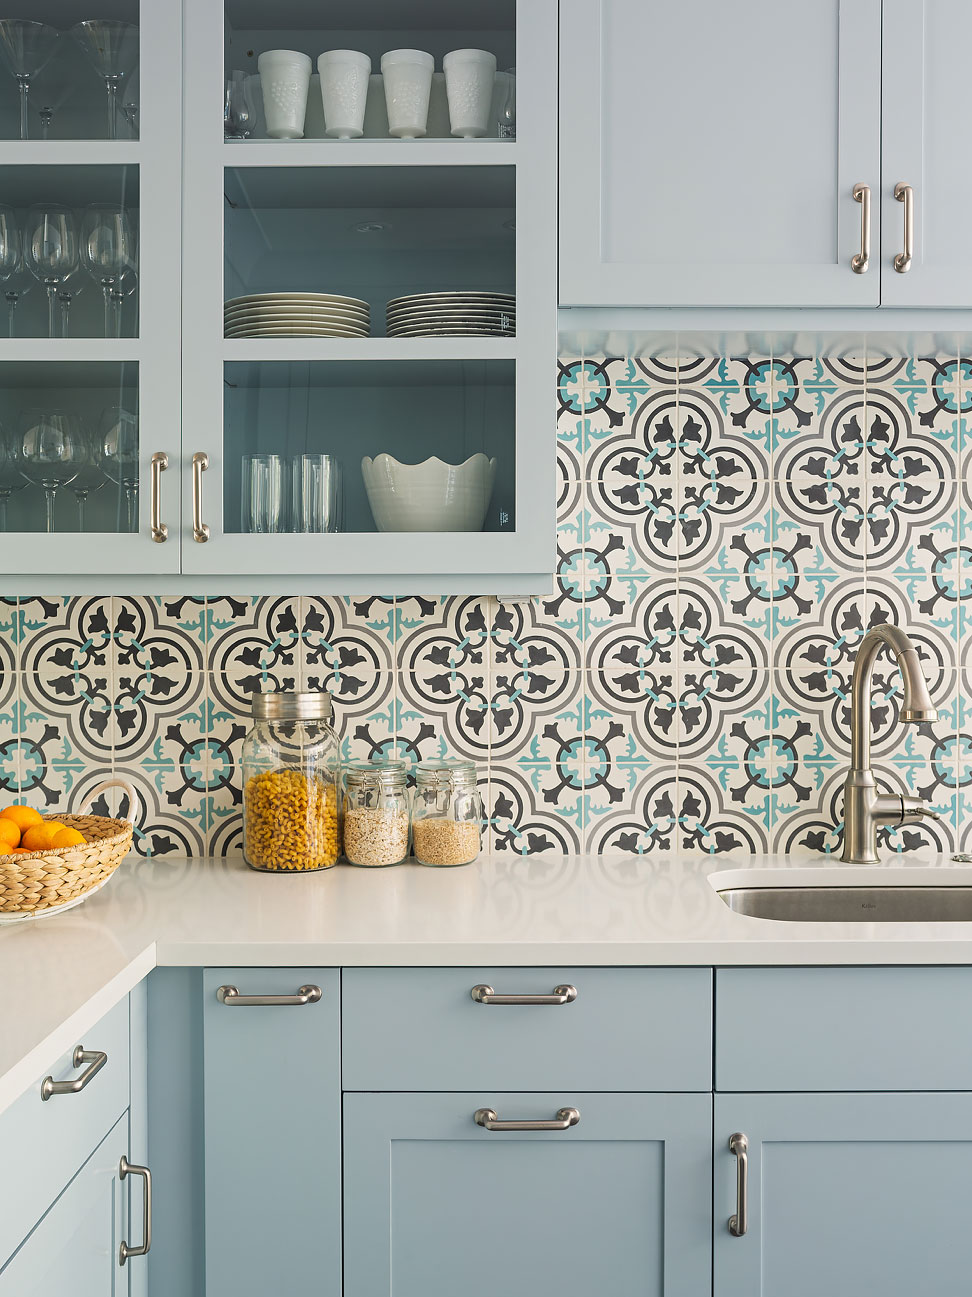 - The Cement Tile Backsplash: How The Look Has Changed Over The